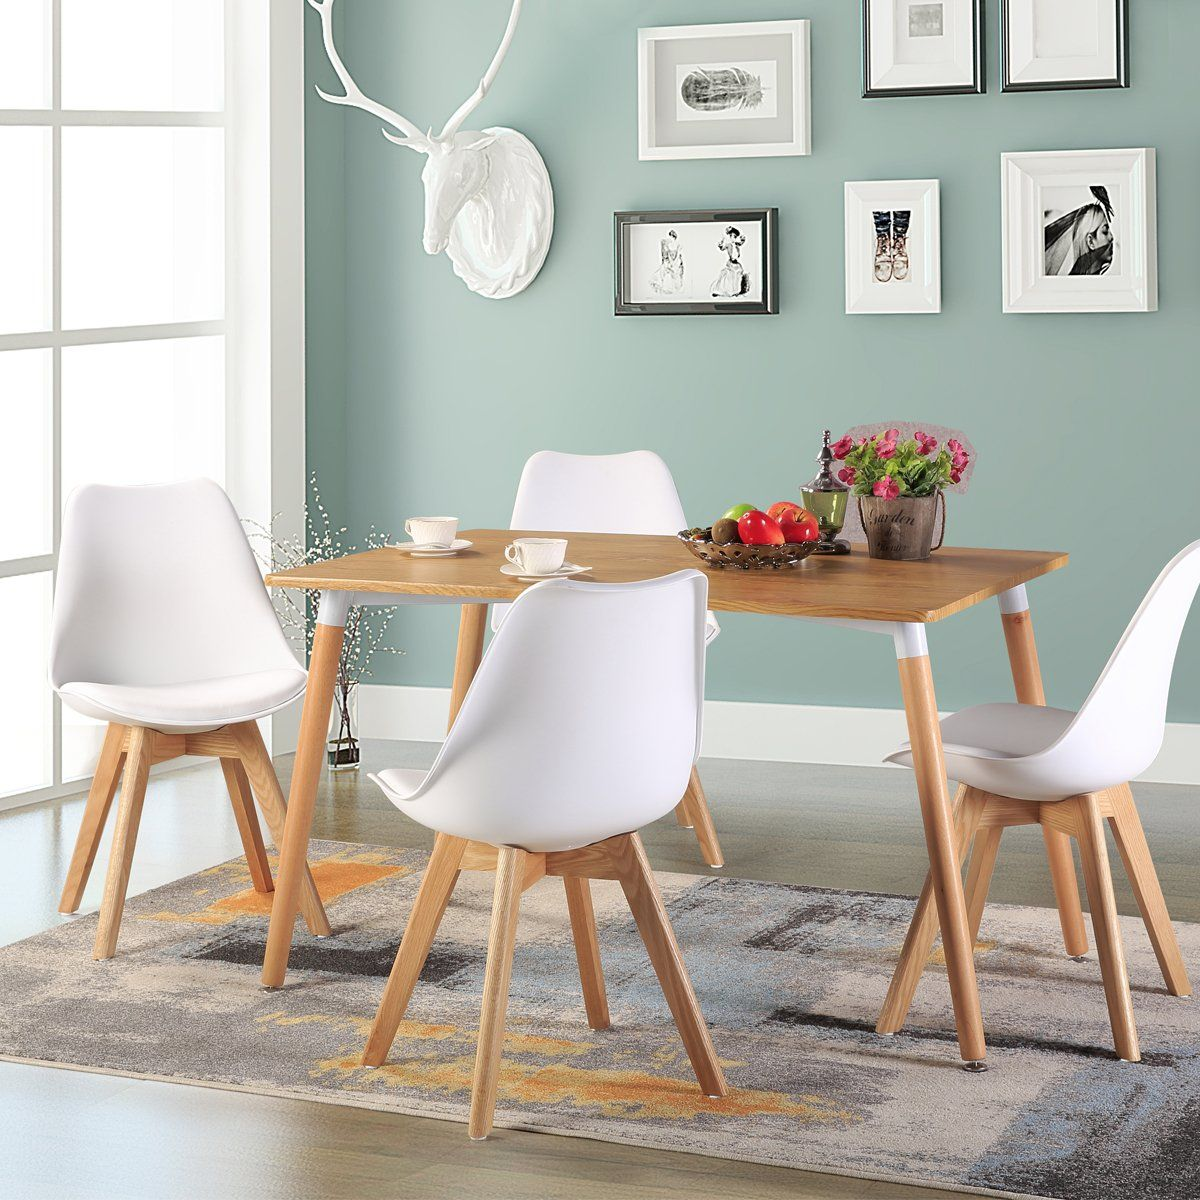 H.JWeDoo Set of 4 Dining Chairs Modern Kitchen Chair with